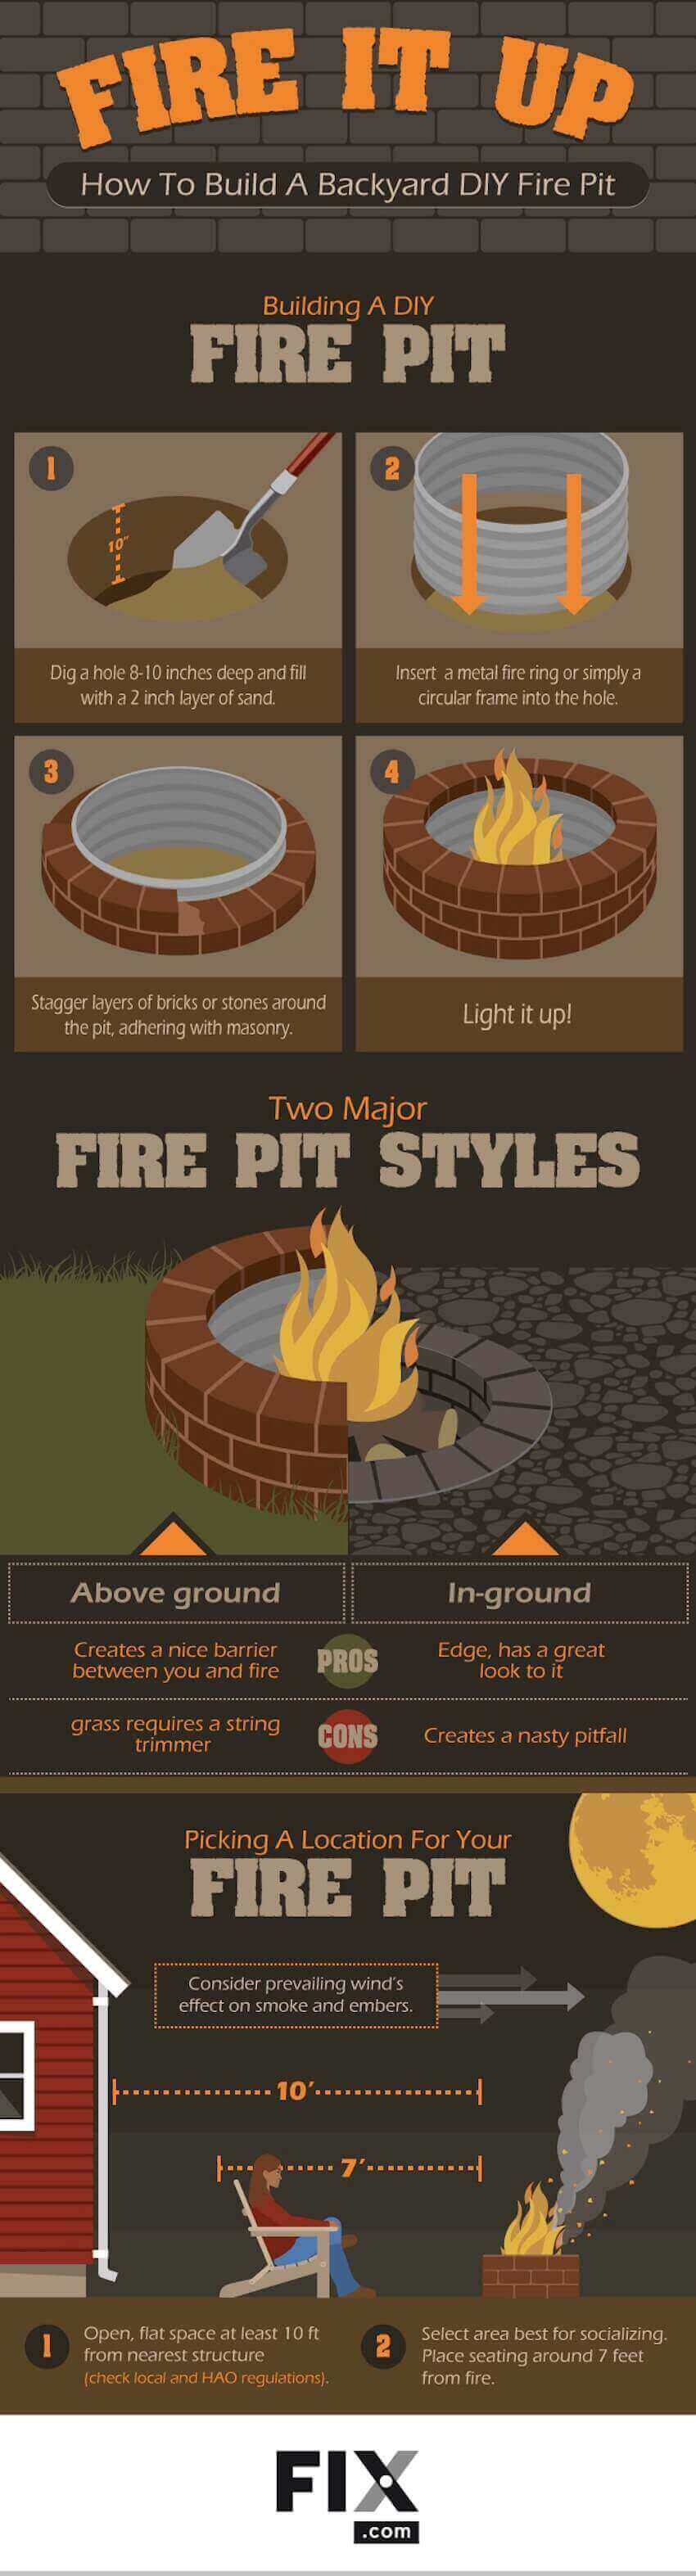 Learn how to build your own backyard DIY fire pit.